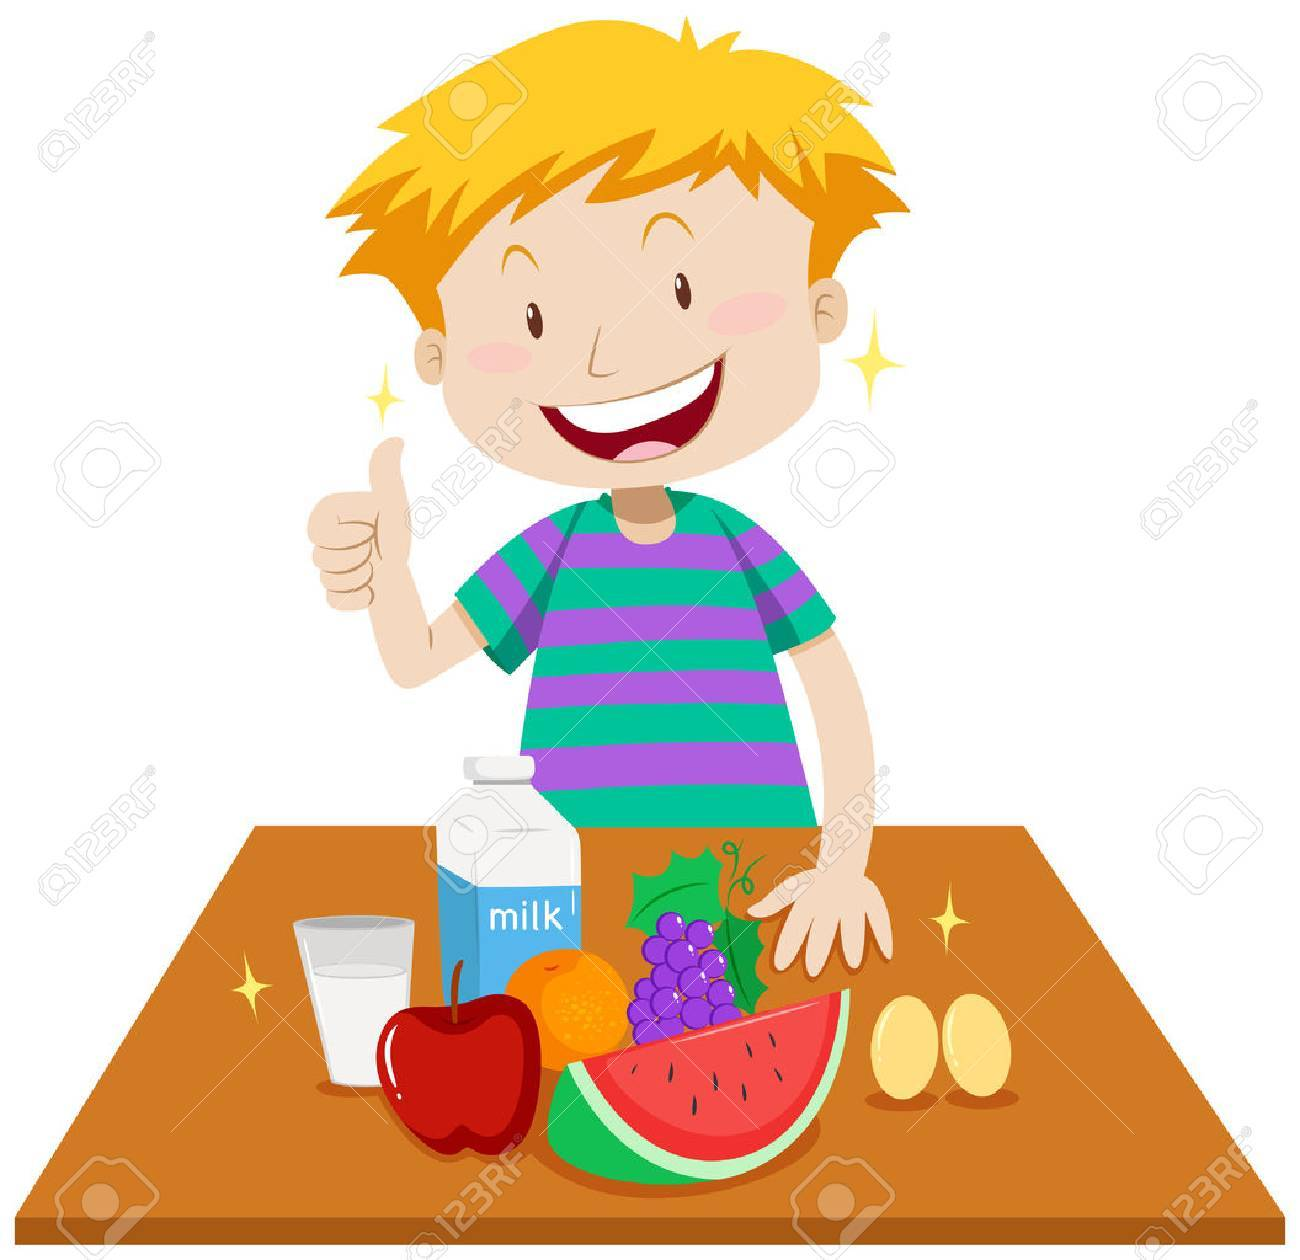 Boy eating healthy foods clipart 4 » Clipart Portal.